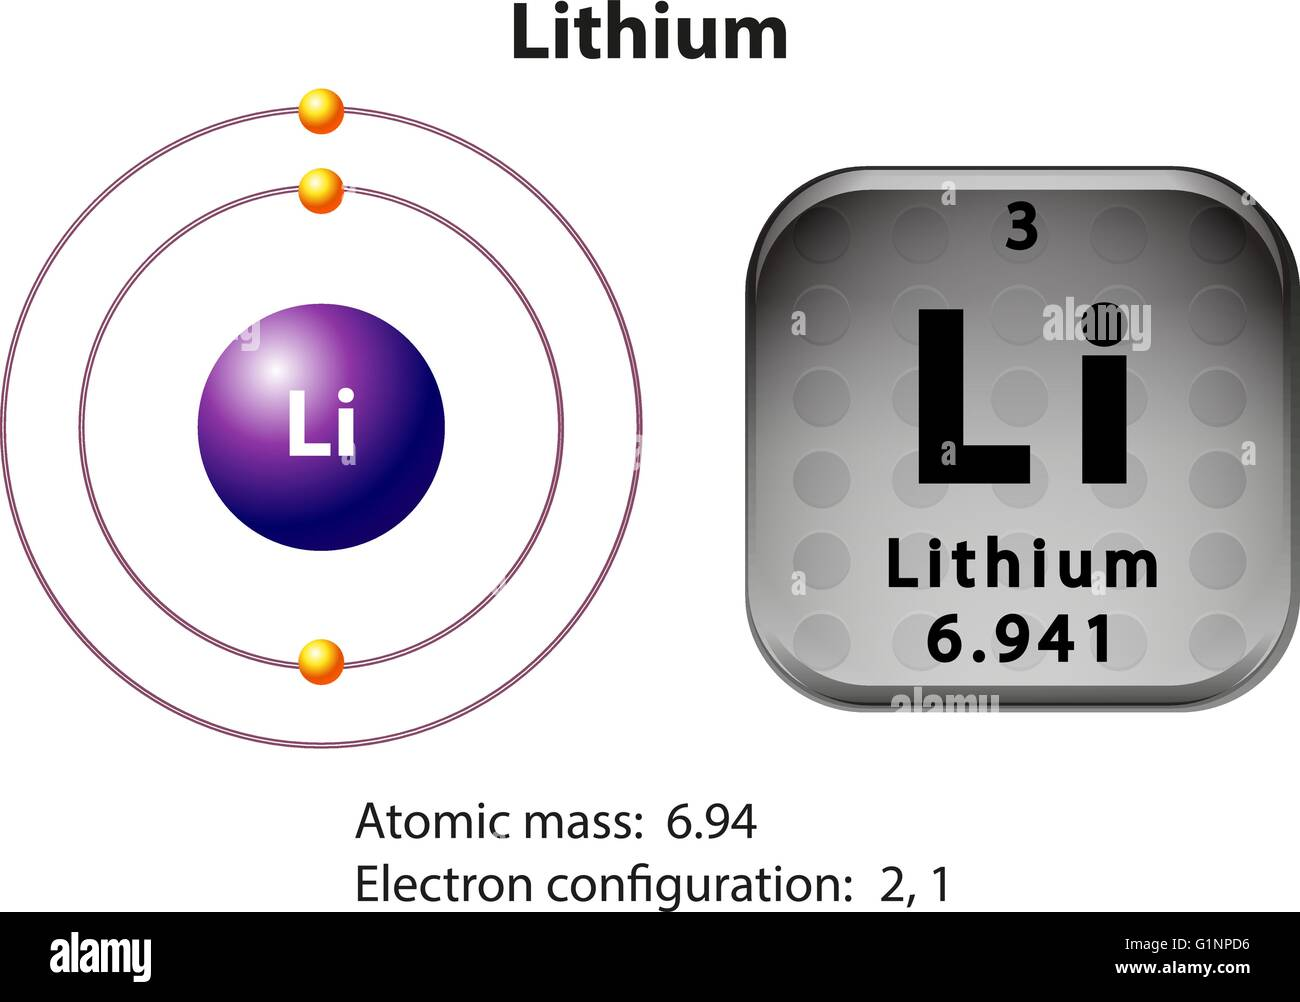 Lithium Stock Vector Images Alamy